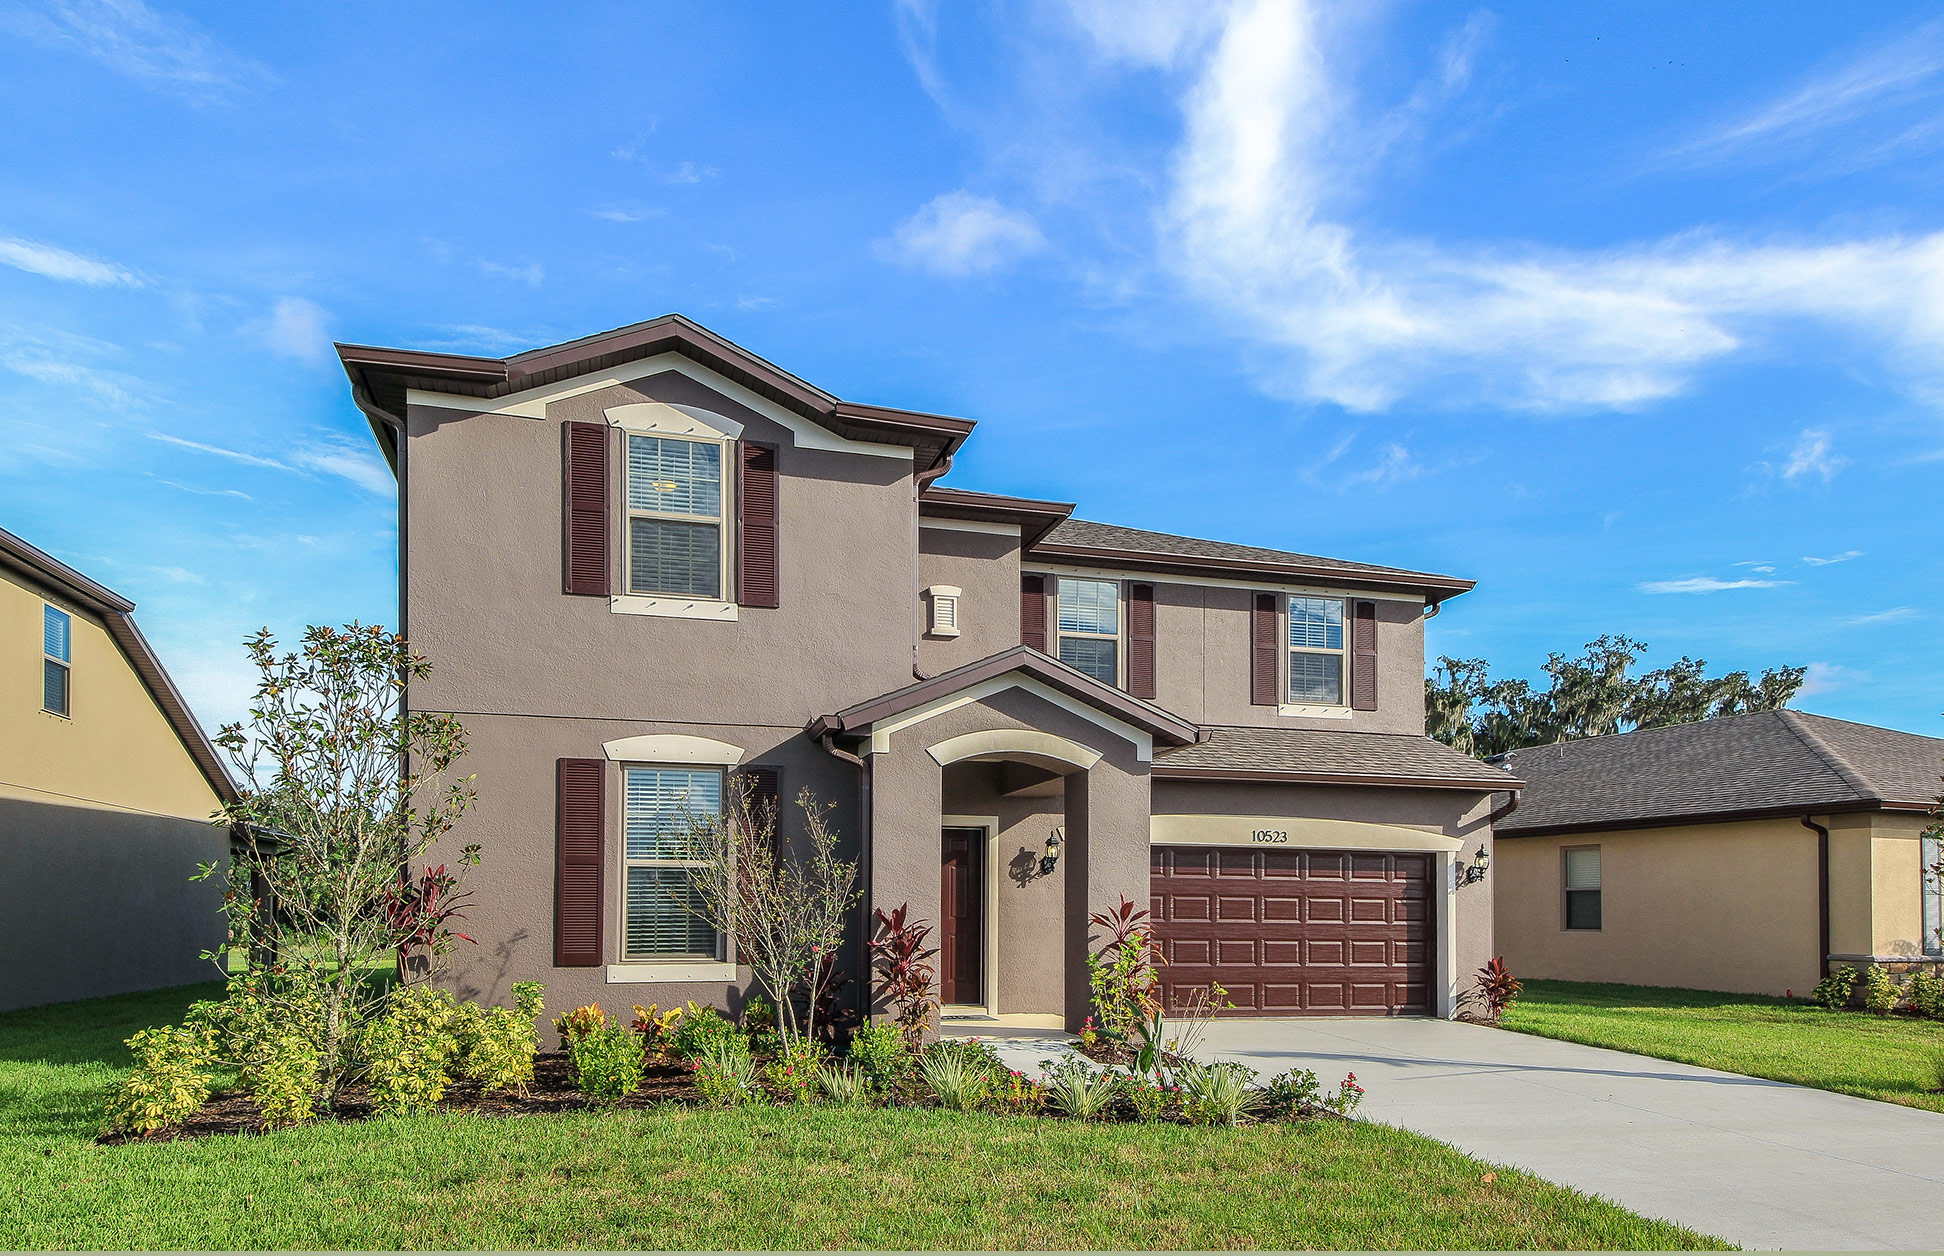 Homes at harrison ranch parrish fl pulte homes new home builders